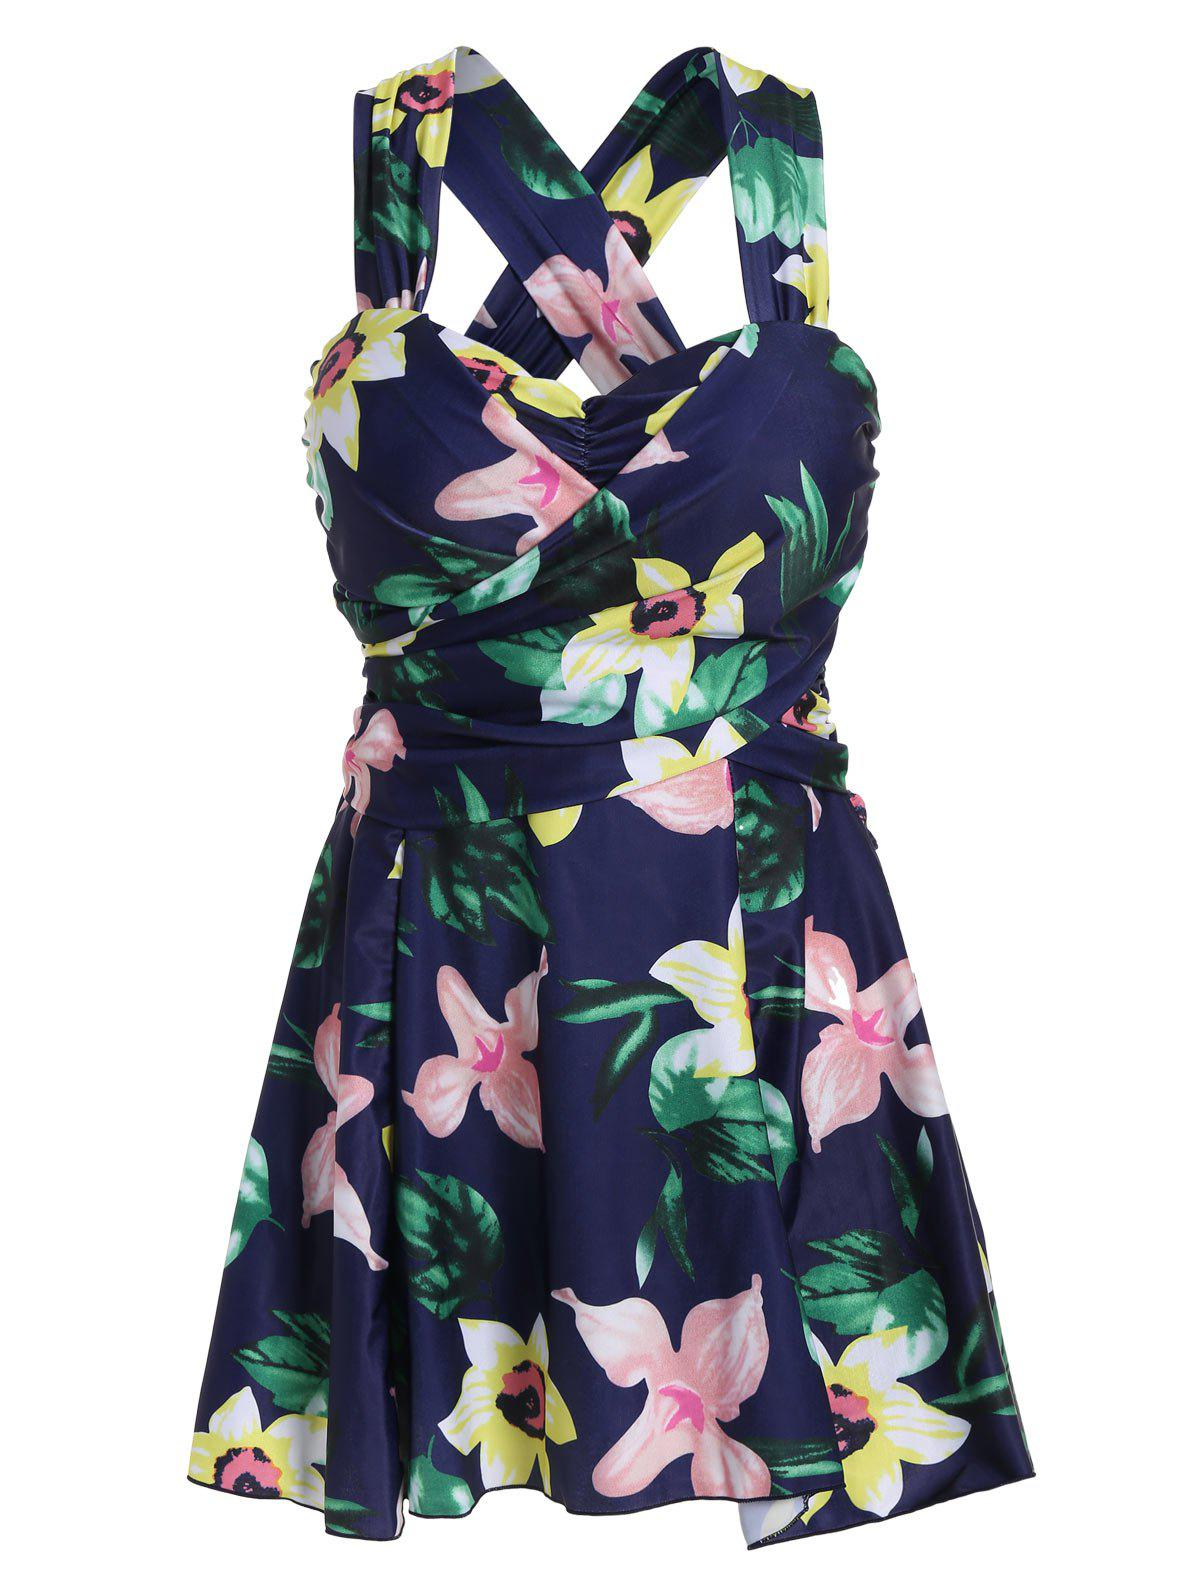 Plus Size HawaiianFloral High Waist SwimdressWOMEN<br><br>Size: 6XL; Color: FLORAL; Gender: For Women; Swimwear Type: One Piece; Material: Polyester; Bra Style: Padded; Support Type: Underwire; Pattern Type: Floral; Placement Print: No; Waist: High Waisted; Elasticity: Elastic; Weight: 0.4500kg; Package Contents: 1 x Swimdress;